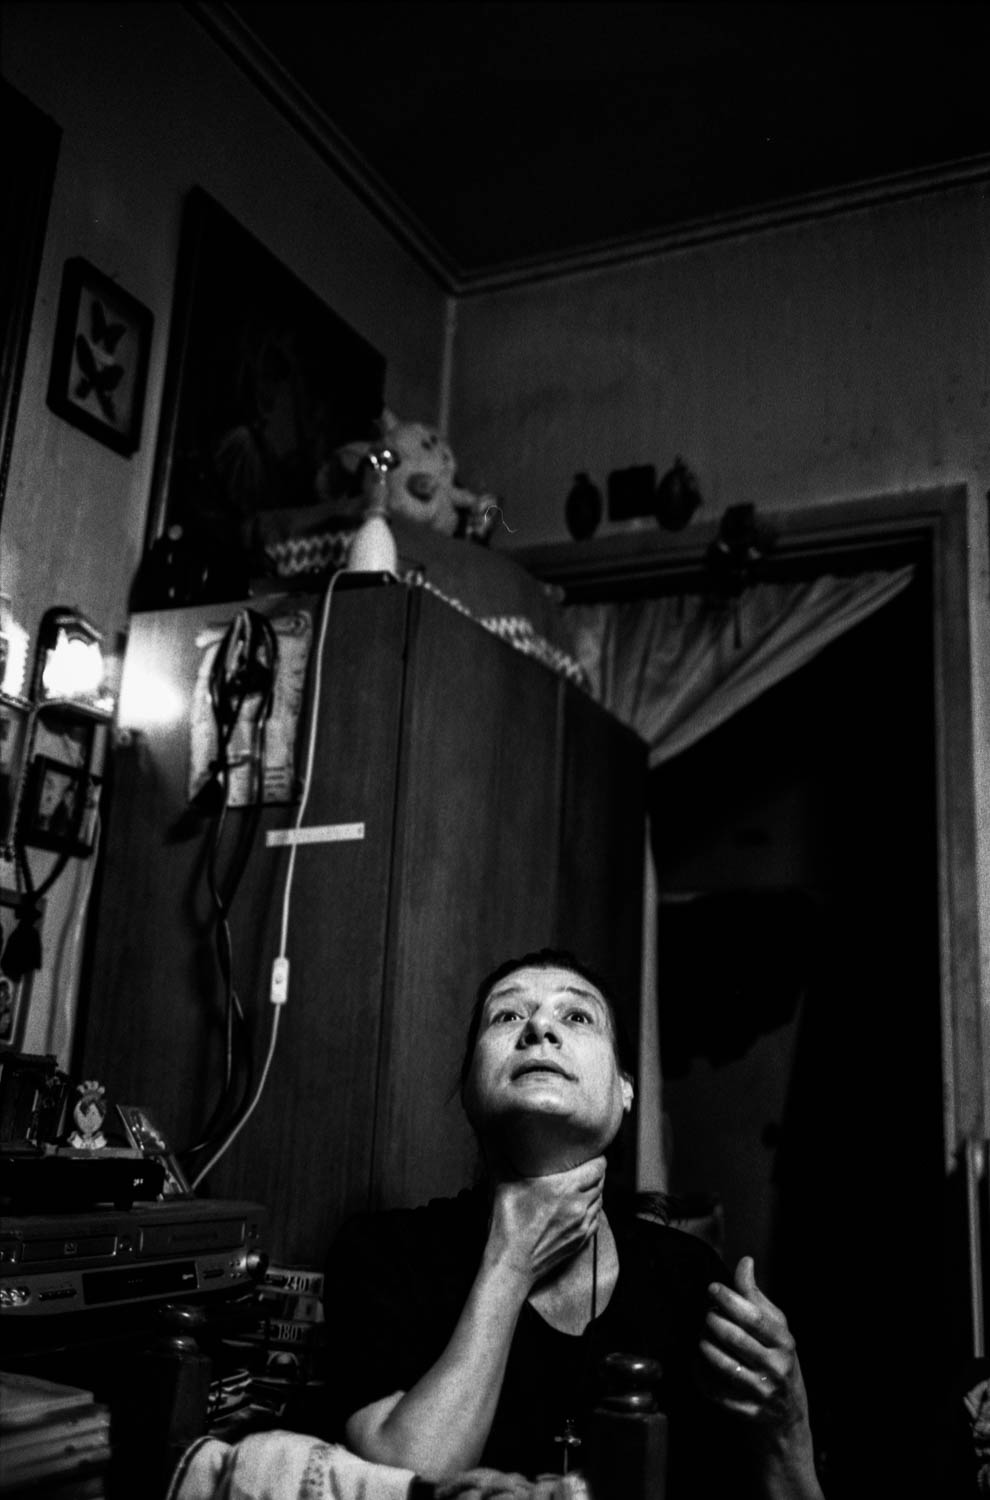 Helena Dritsa is a single mother of two. her son Costas, 18 years old is affected by brain malfunction from birth and is in special need for expensive medications they cannot longer afford.  Polina 23, the elder of Helena's children has lost her job and she suffered isolation from her peers. They are alone, living in a studio flat in the semi-basement of an anomious building in North Athens. Helena fears for the worst.